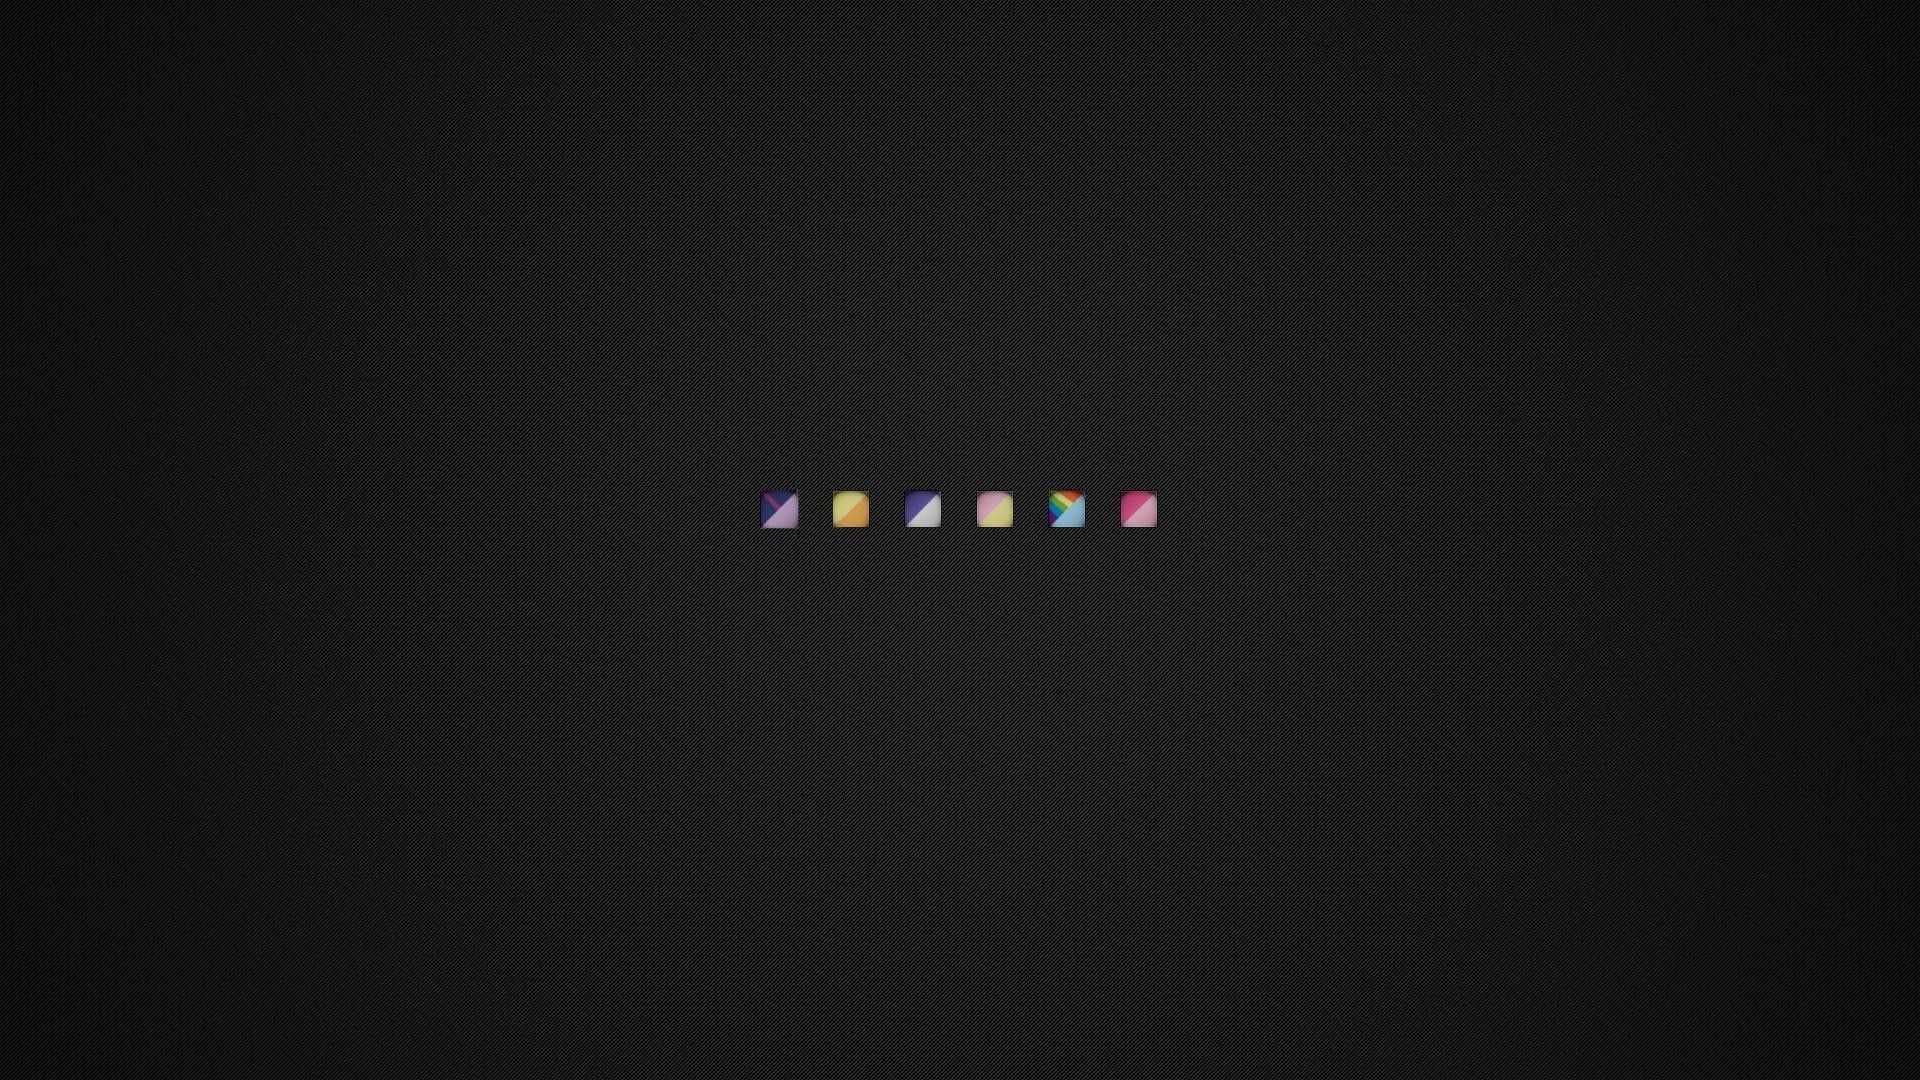 Dark Minimalist Aesthetic Desktop Wallpaper